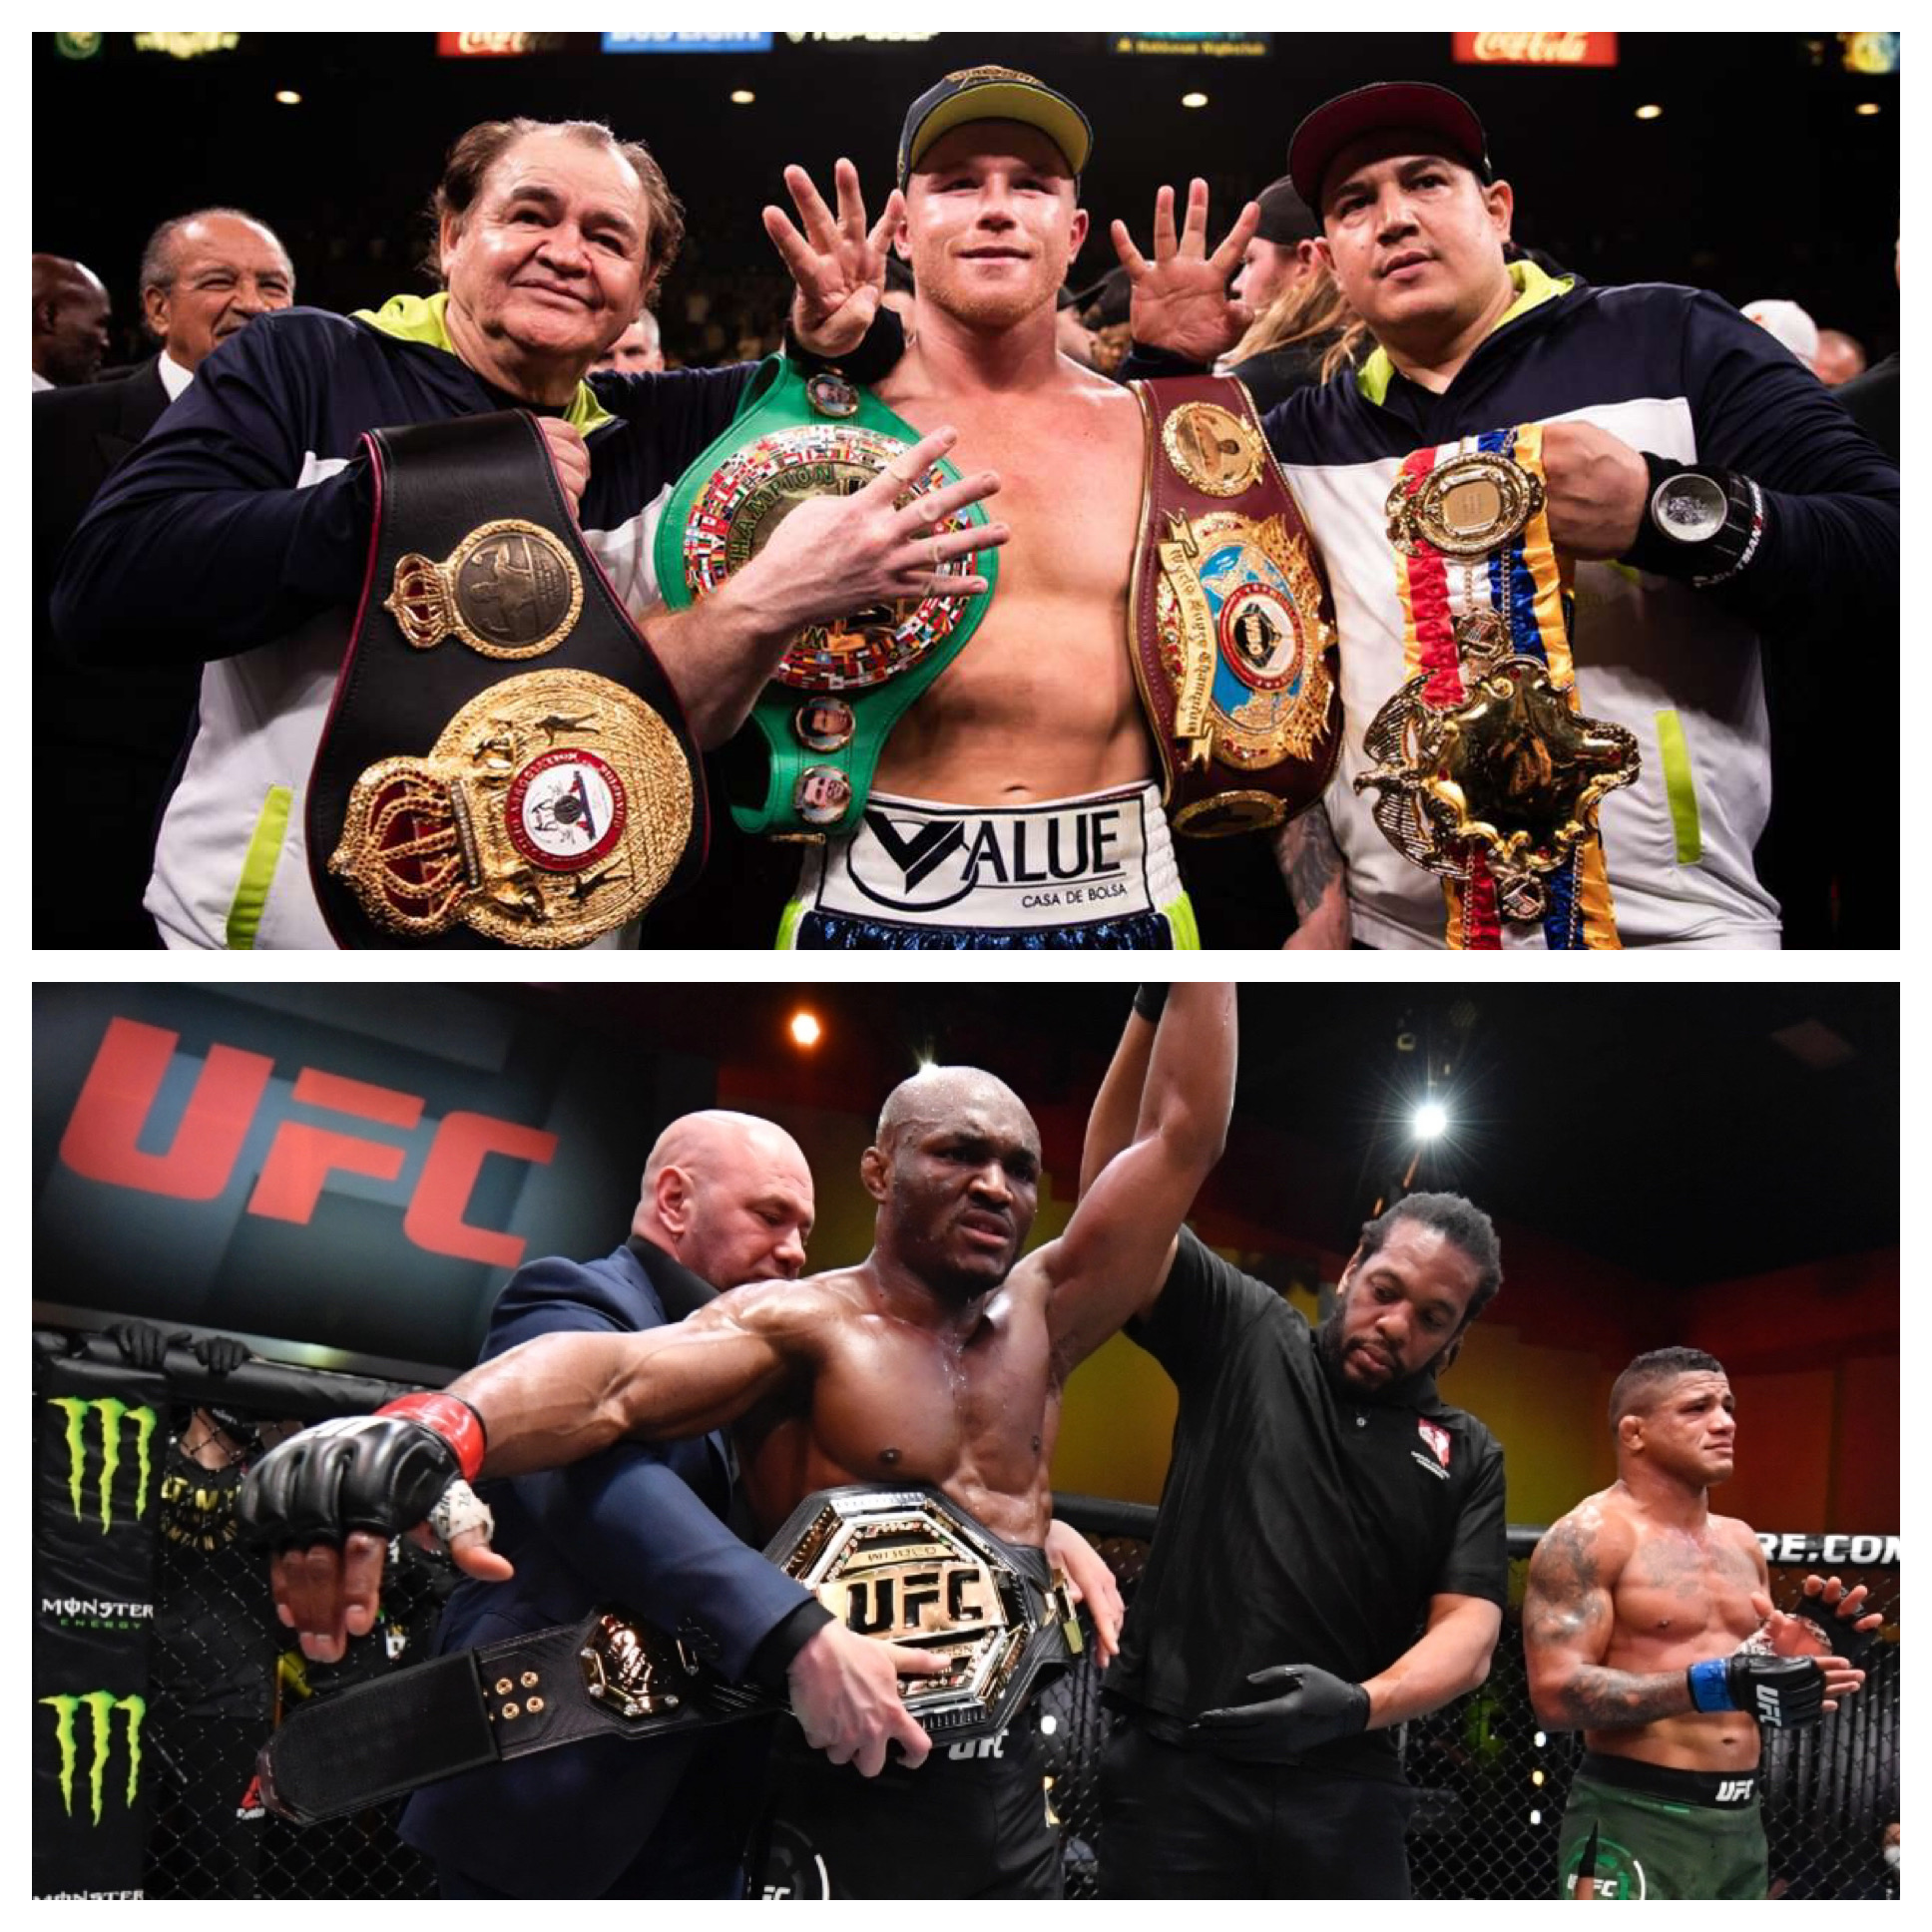 """UFC Star Kamaru Usman Confident He Could Defeat Canelo Alvarez In A Boxing Ring: """"I Can Do Anything I Put My Mind To"""""""